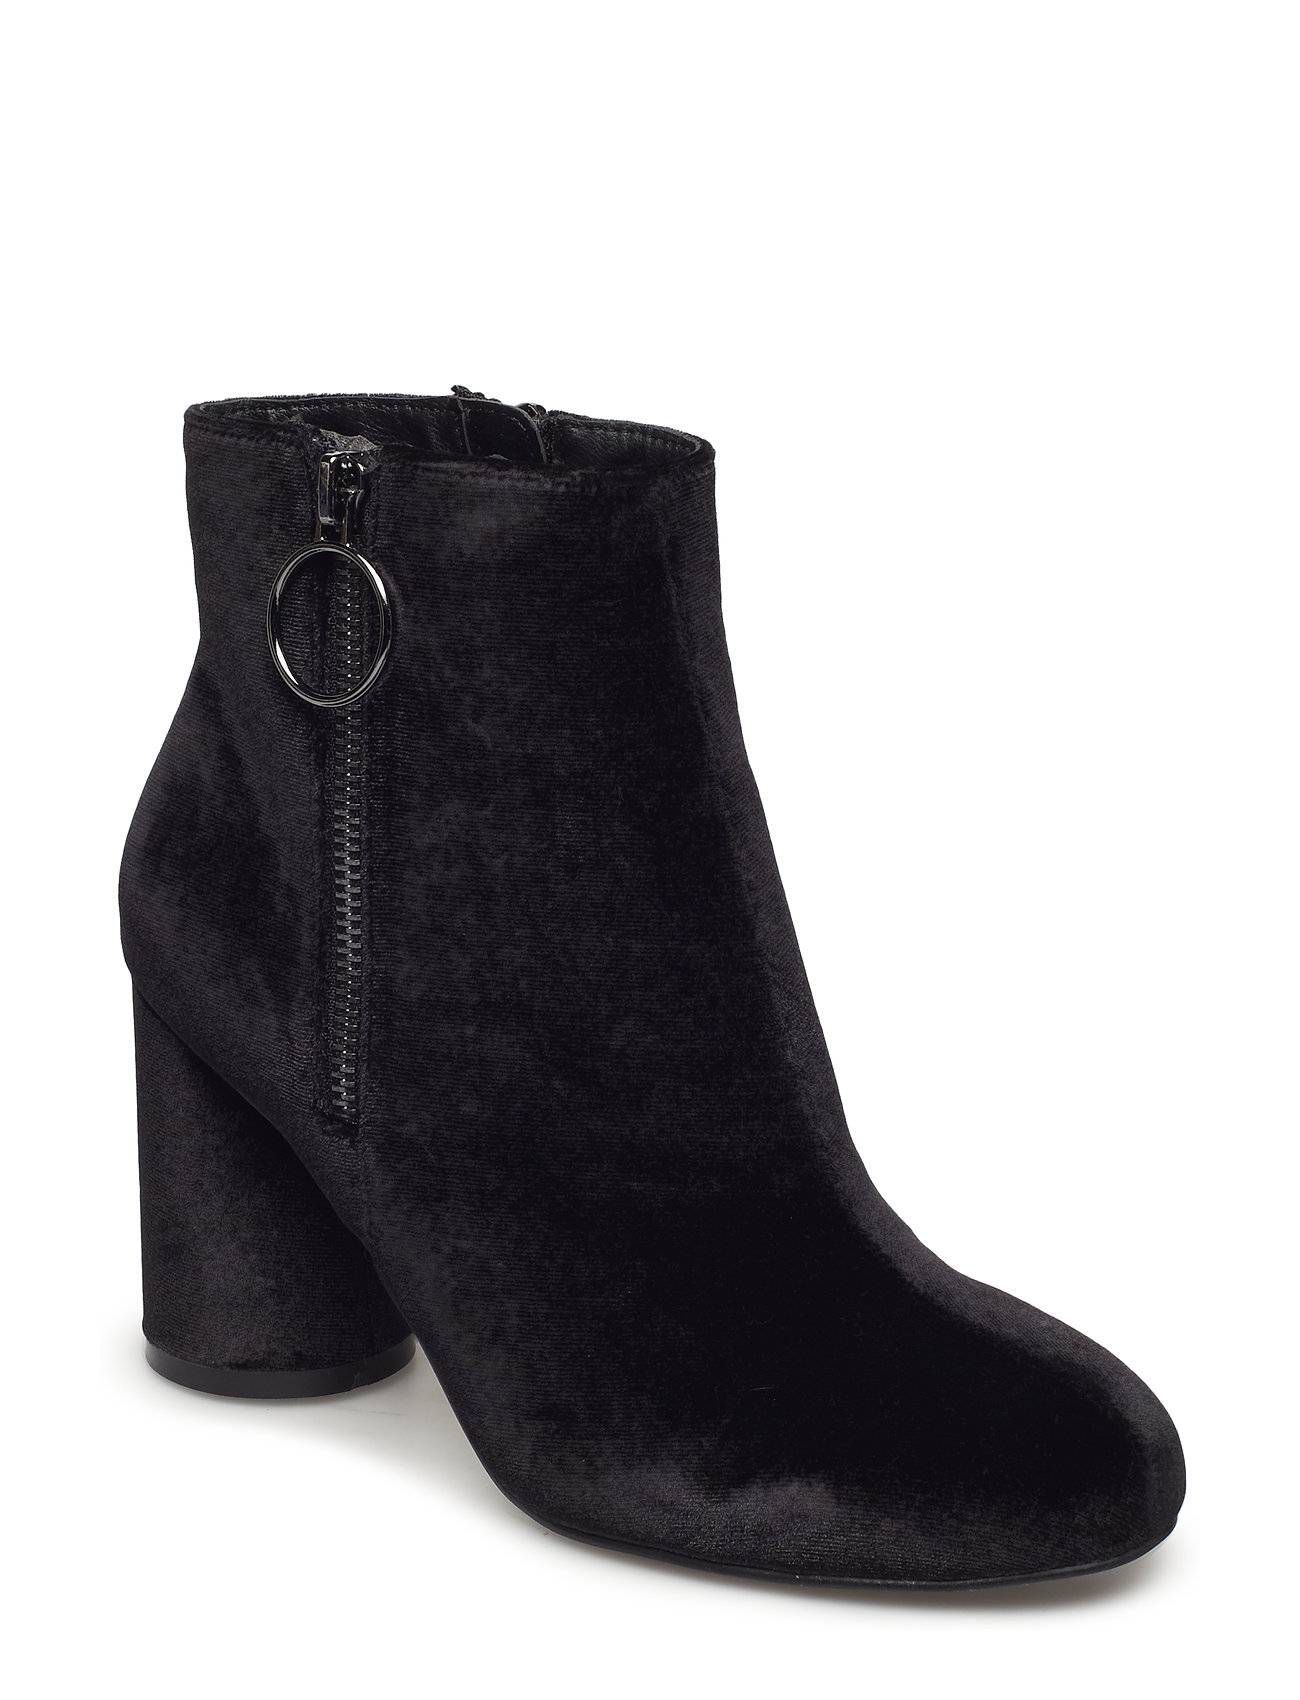 Bianco Round Heel Ankle Boot